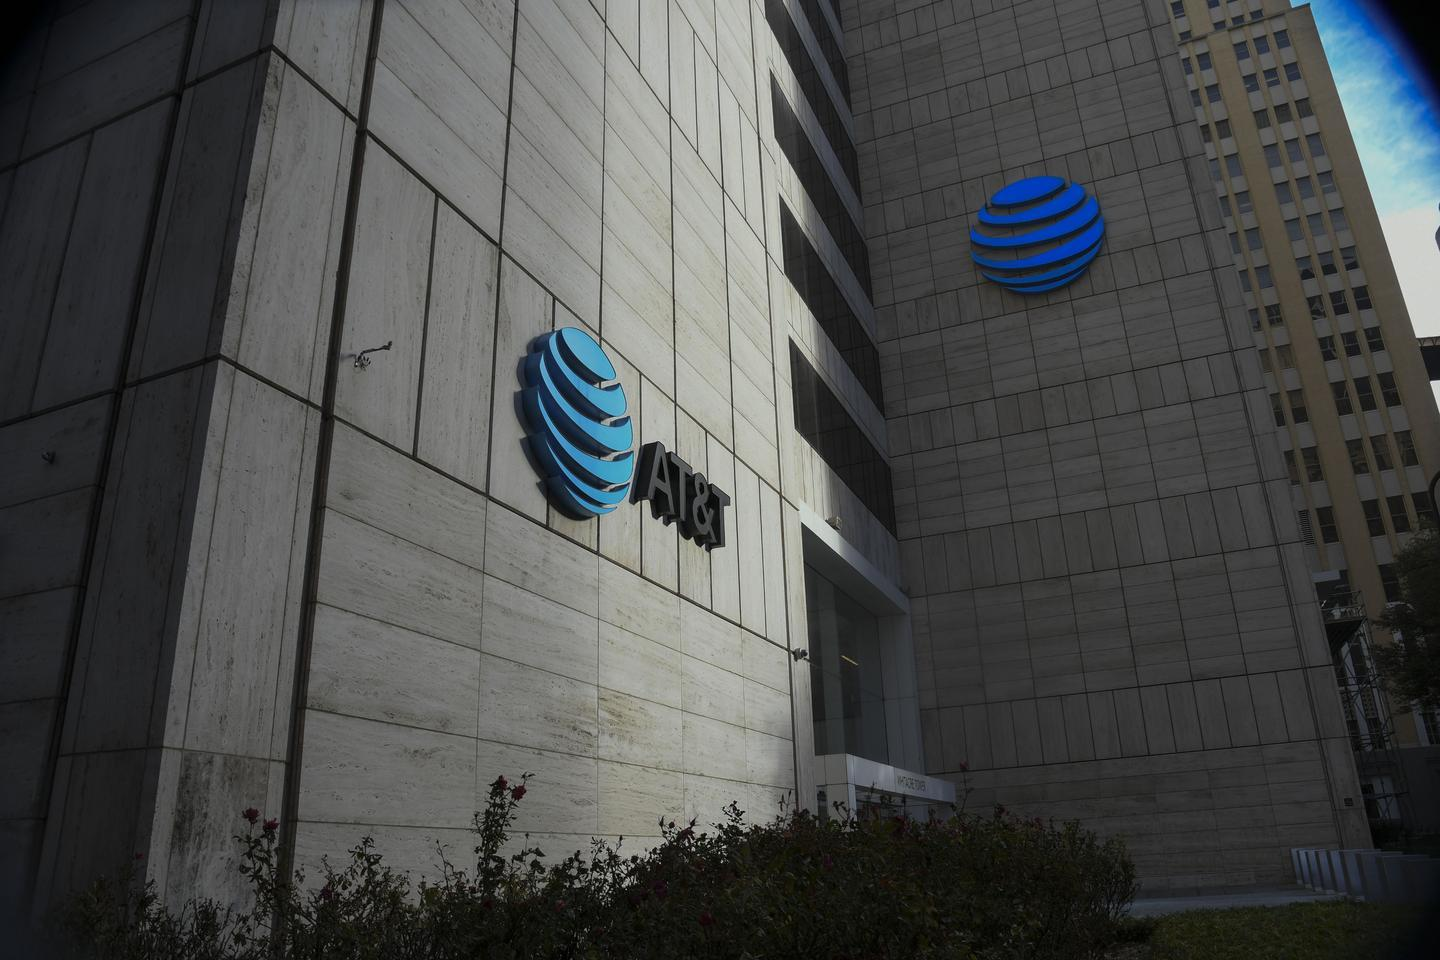 News post image: AT&T is bolstering pay for 'front-line' workers amid growing demands on networks